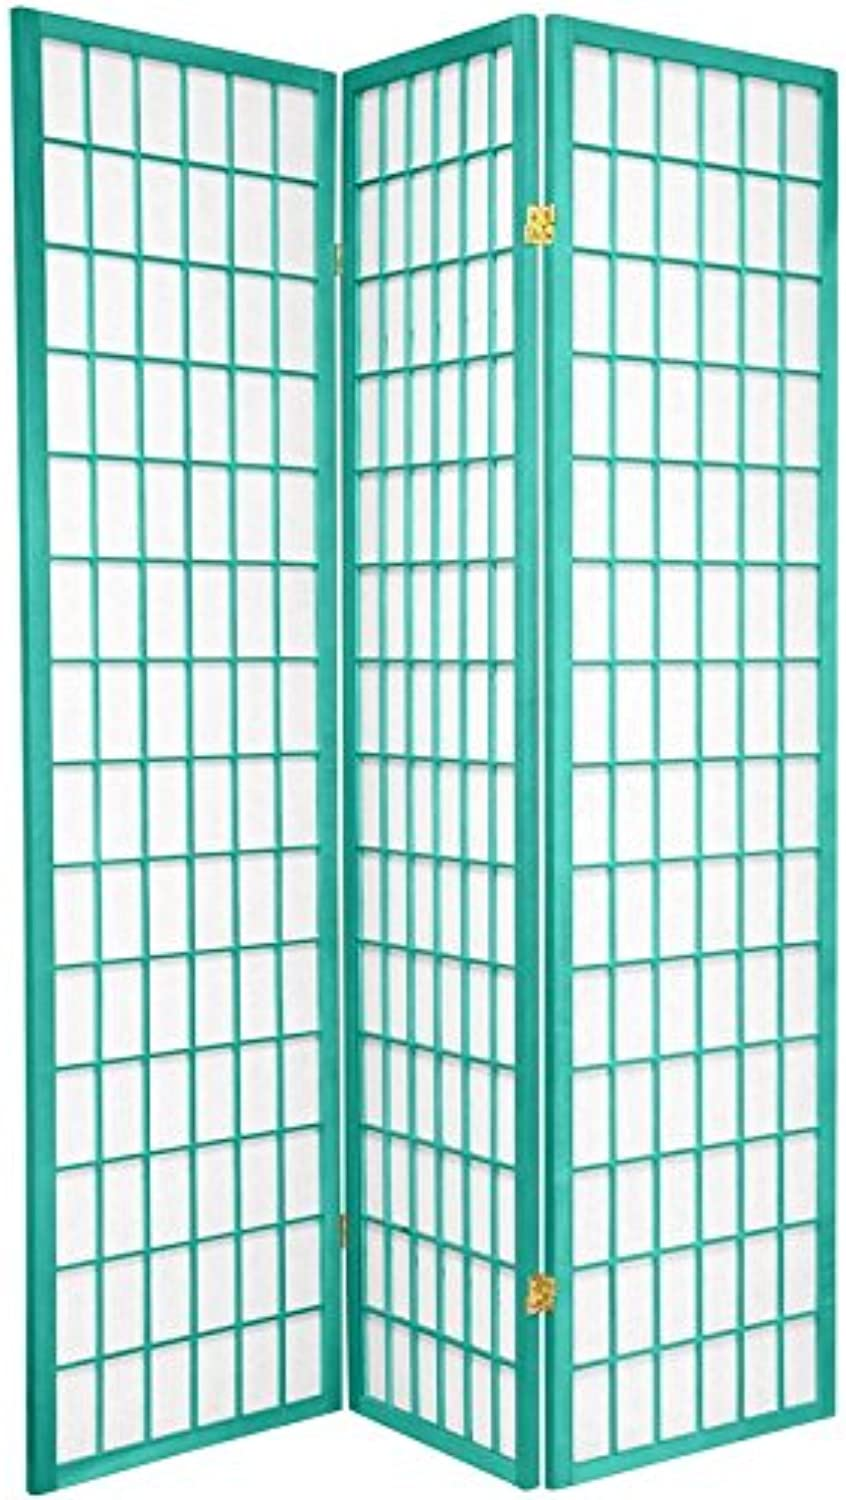 Oriental Furniture 6-Feet Window Pane Japanese Shoji Folding Privacy Screen Room Divider, 3 Panel Turquoise